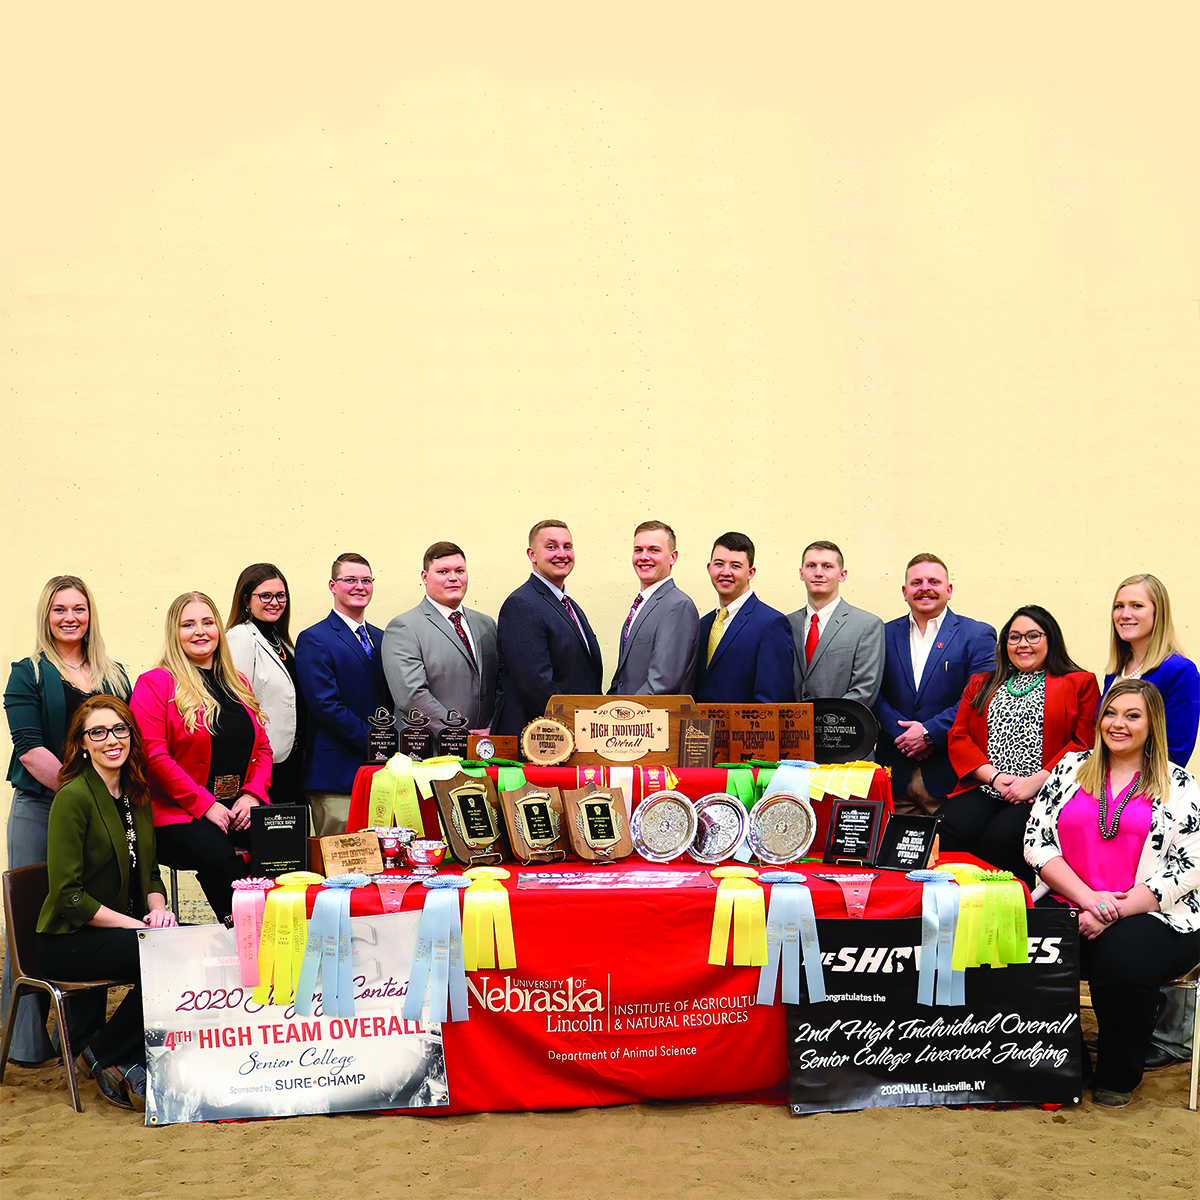 Group picture of 2020 Livestock Judging Team